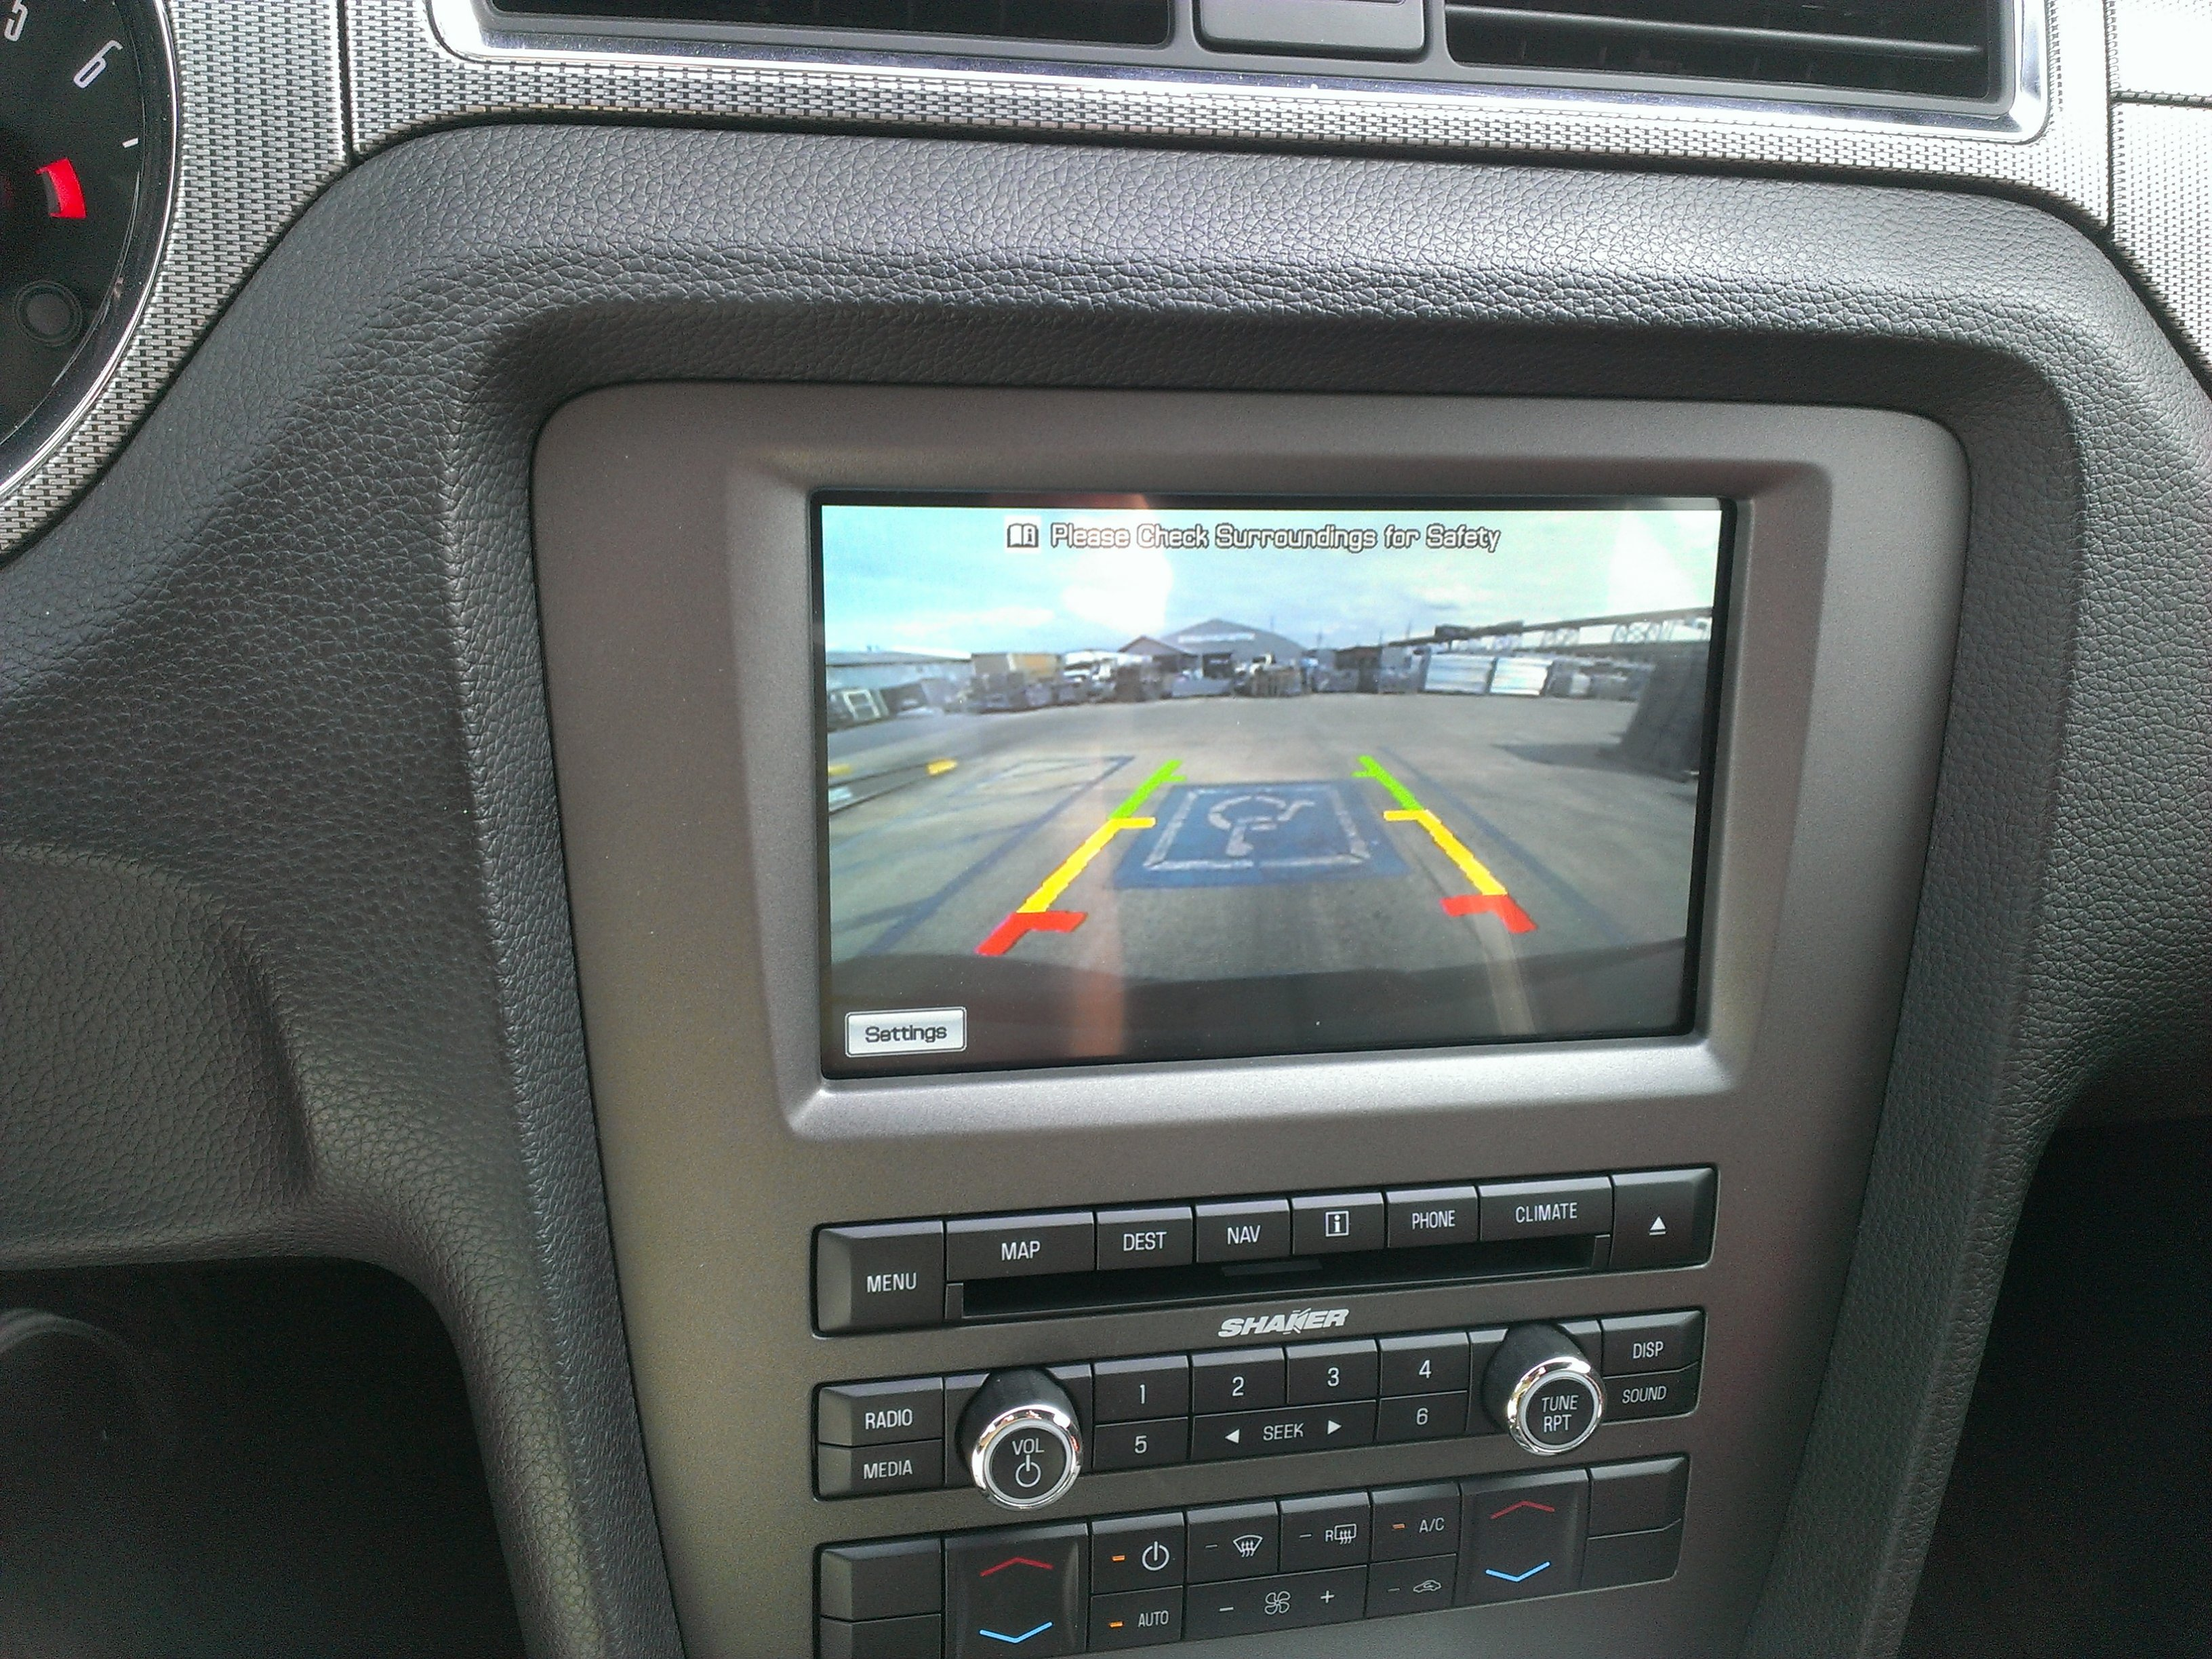 2014 rear deck camera wiring schematic needed mustang evolution 2015 Mustang Rear at Night this image has been resized click this bar to view the full image